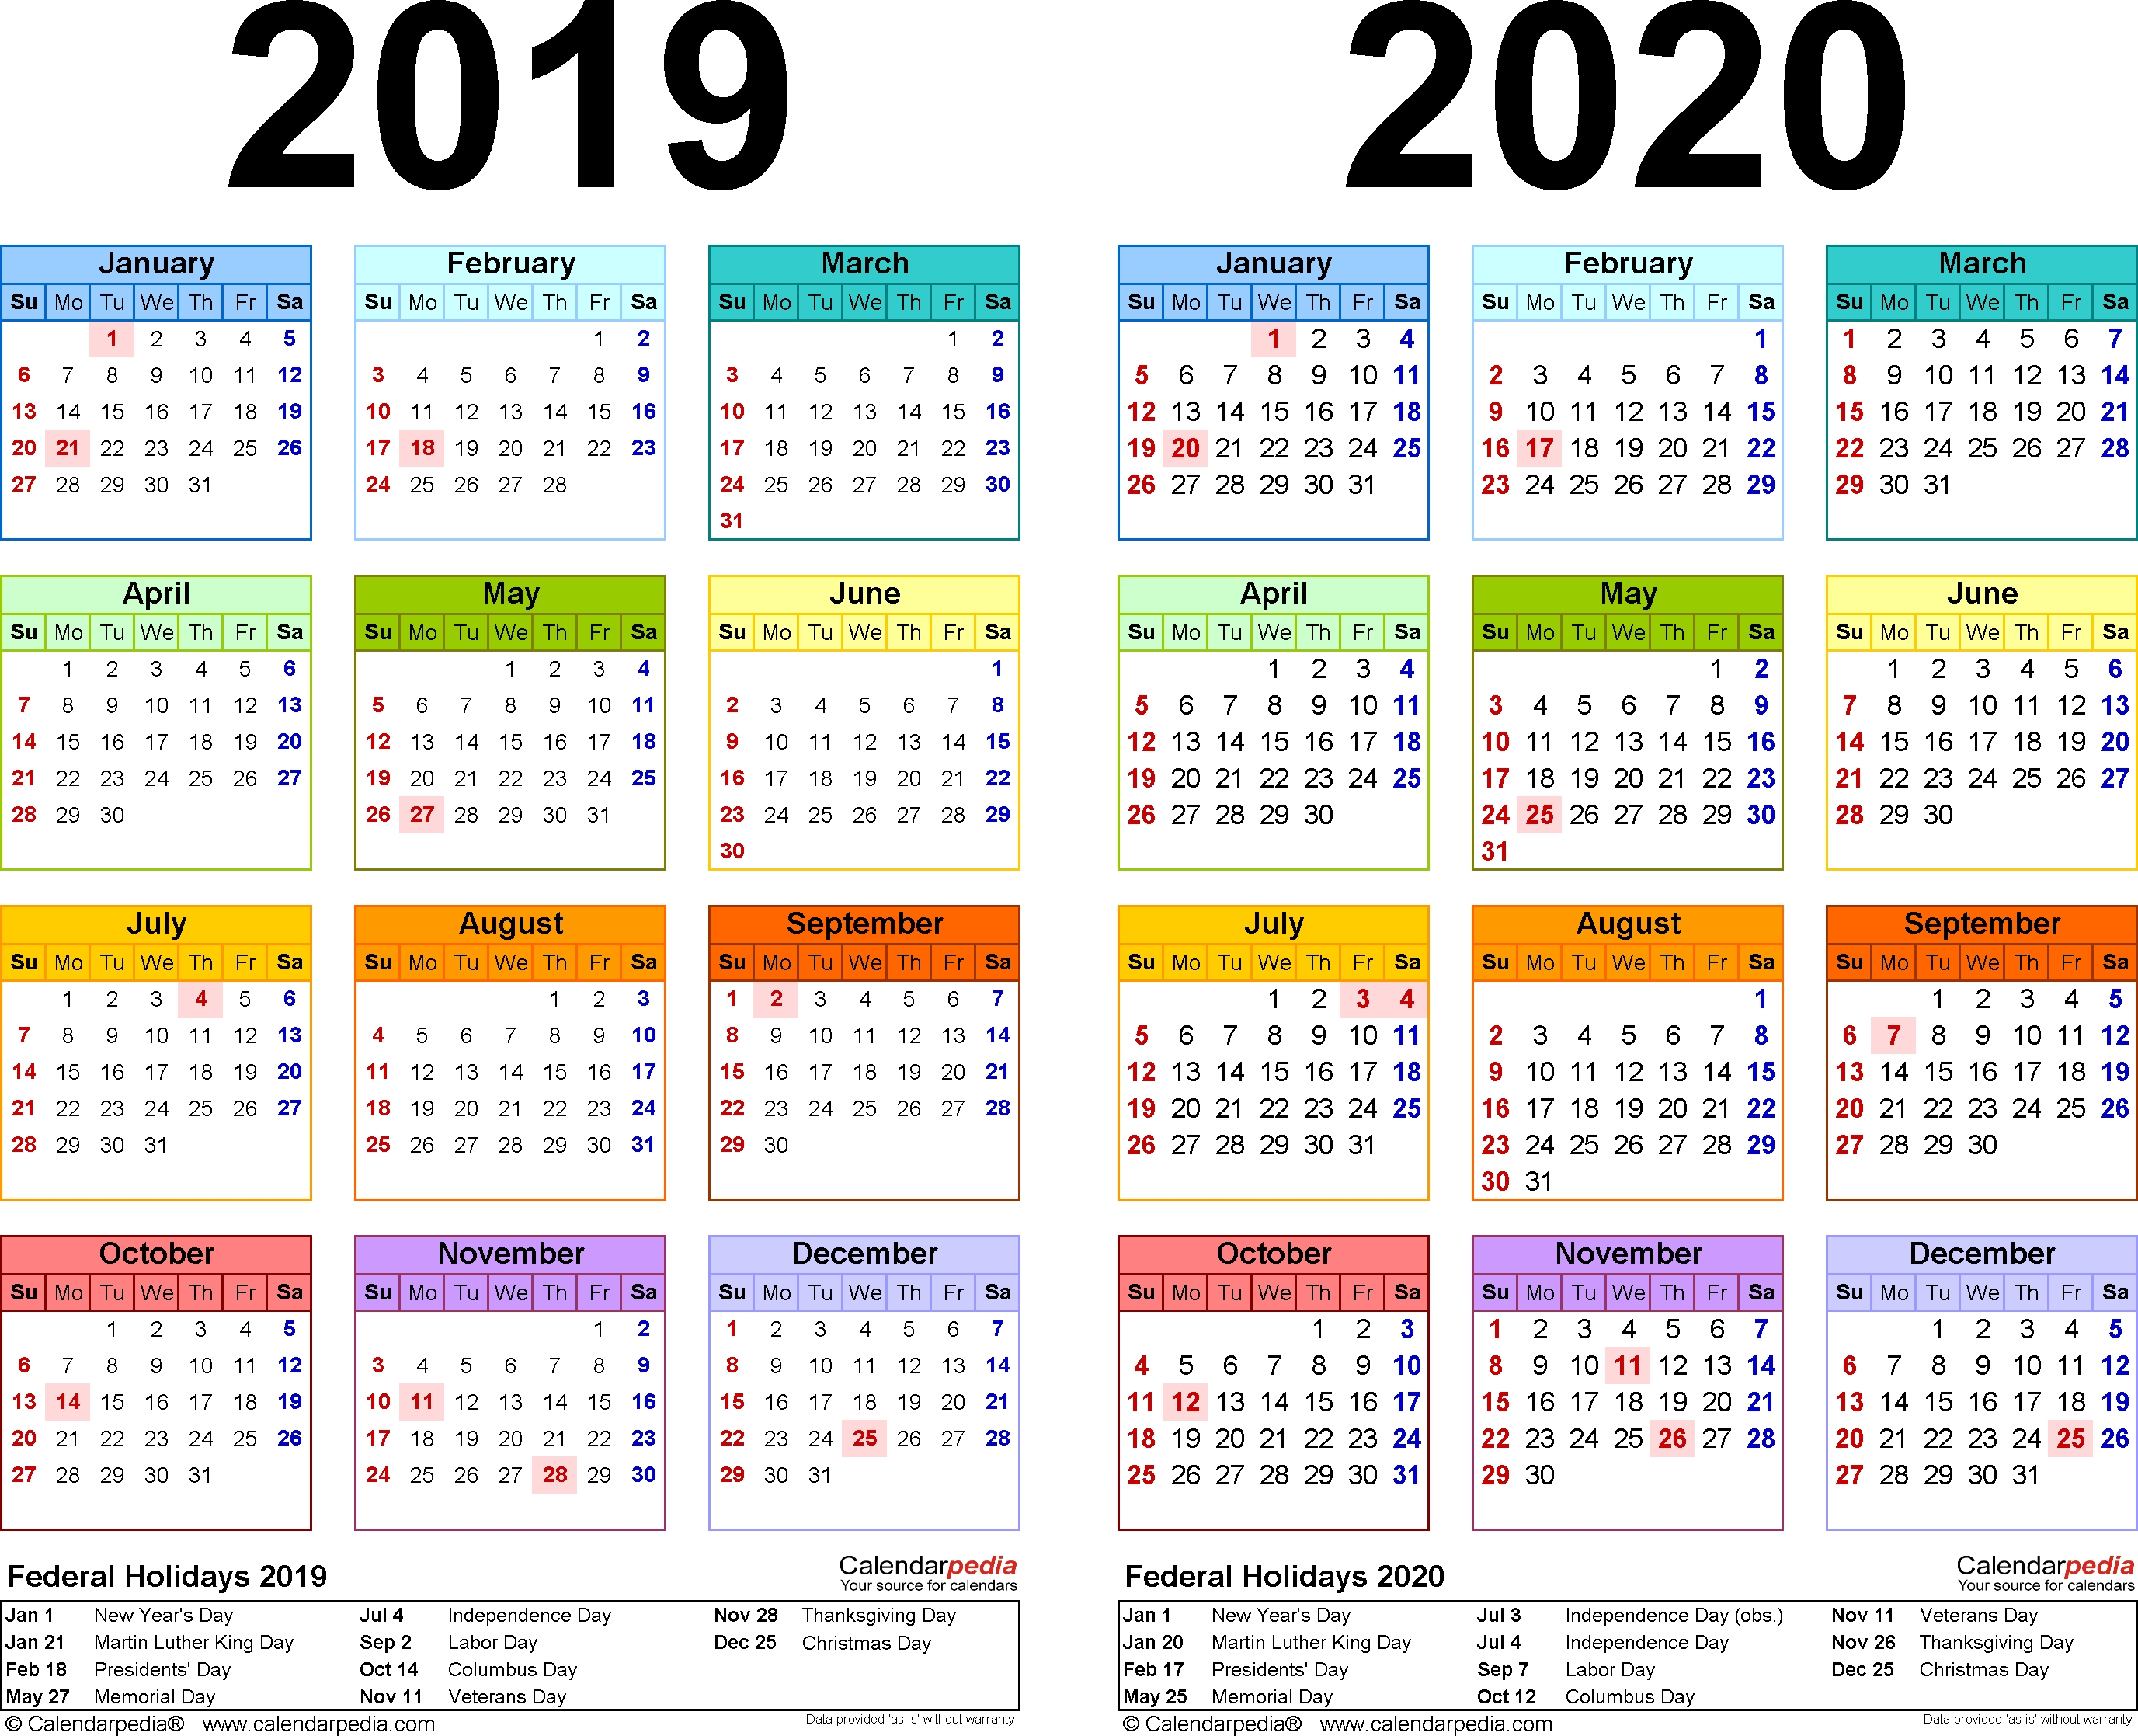 2019-2020 Calendar - Free Printable Two-Year Pdf Calendars pertaining to Google Annual Calendar 2019-2020